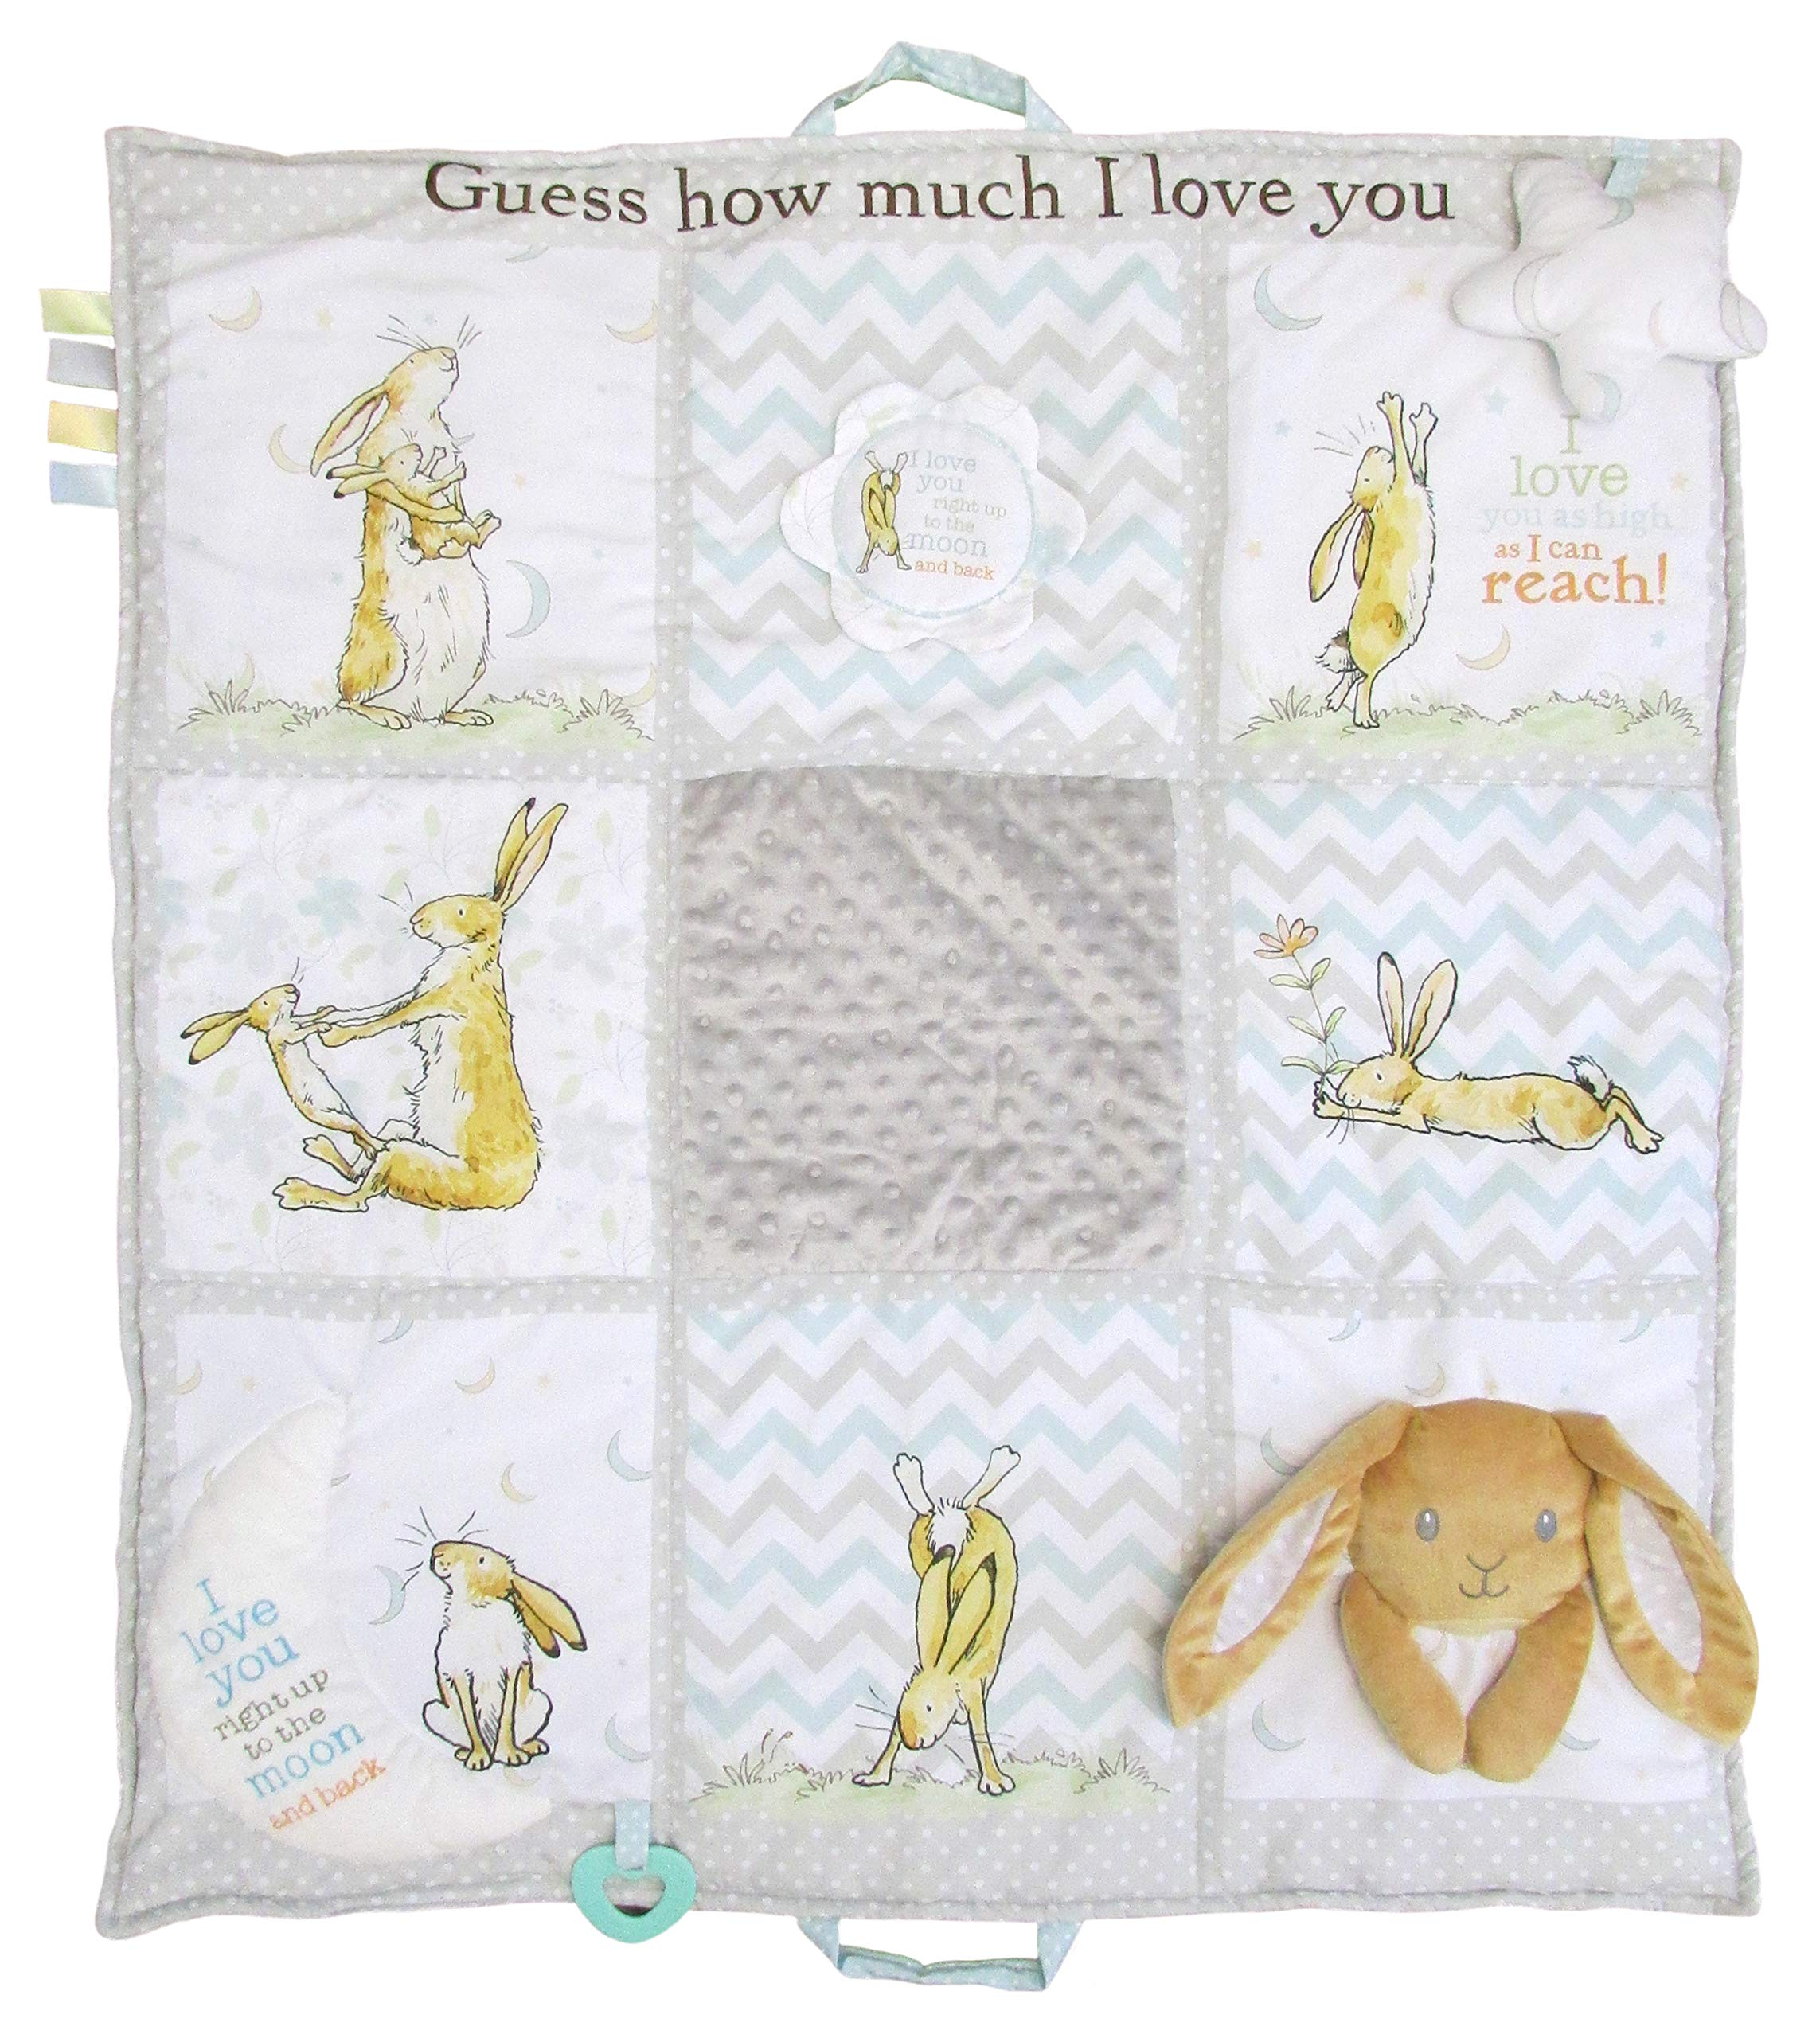 Kids Preferred Guess How Much I Love You Nap Mat by KIDS PREFERRED